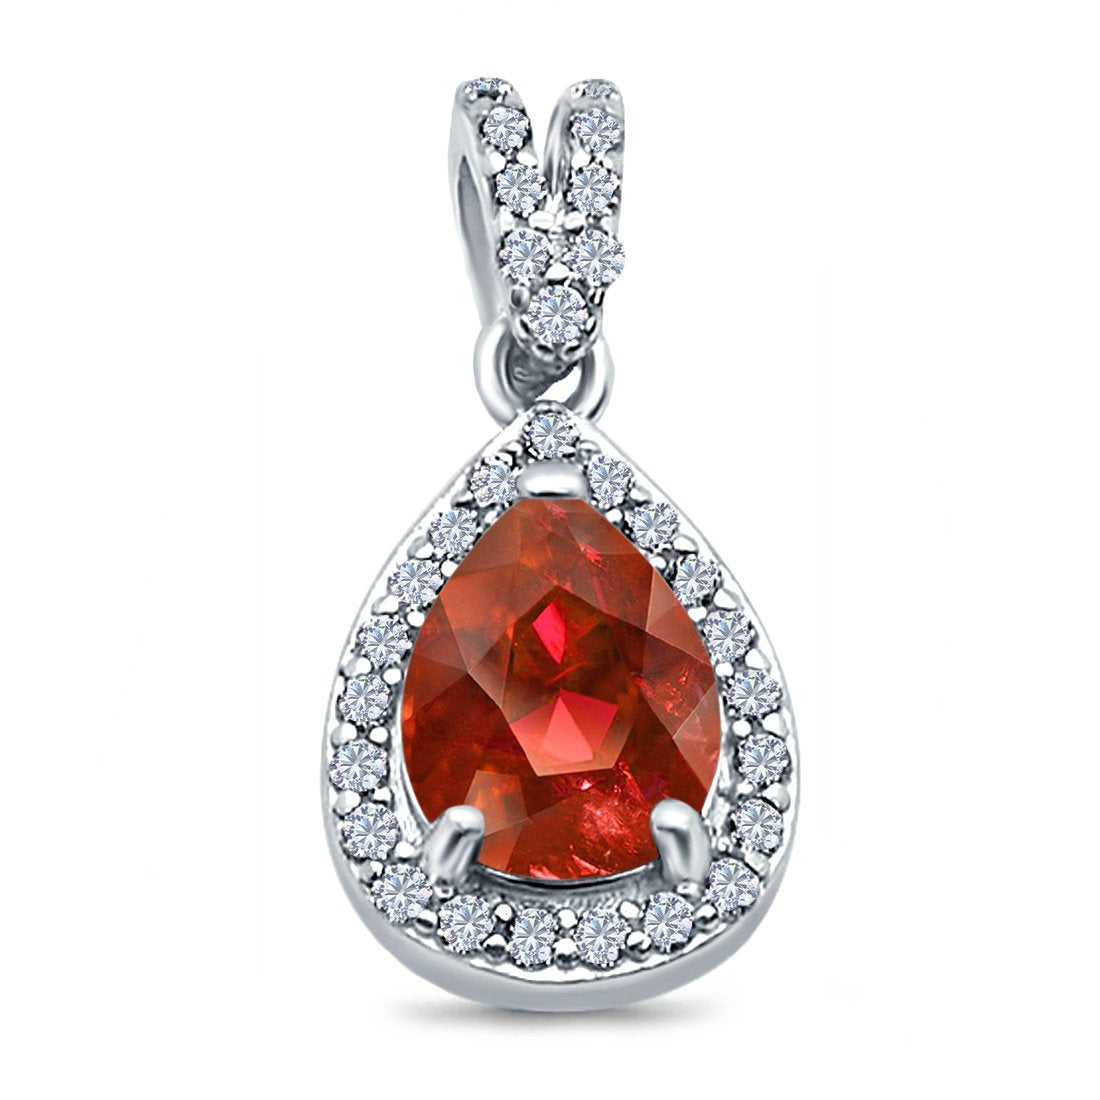 Pear Shape Simulated Garnet CZ Pendant for Necklace 925 Sterling Silver